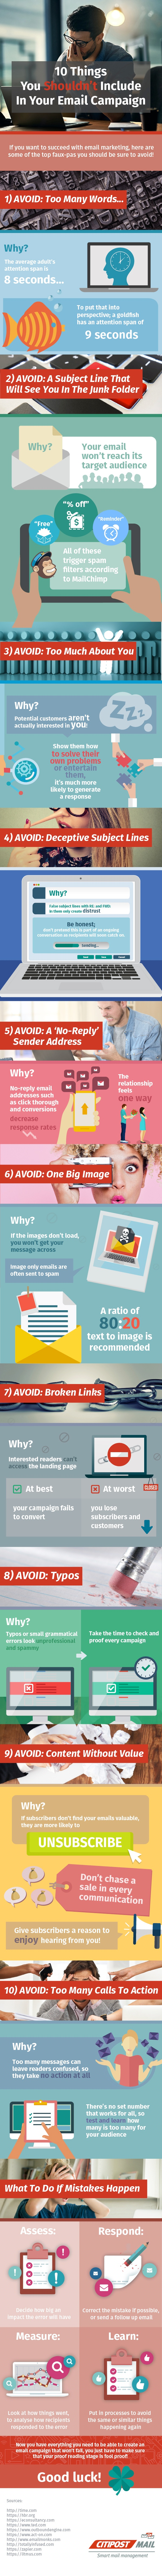 Email-Campaign-Infographic-St2.jpg